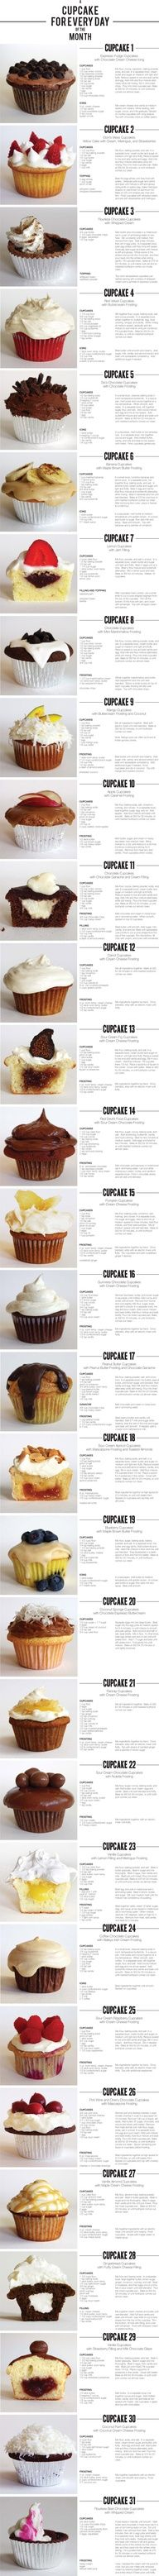 a cupcake for every day of the month! #food